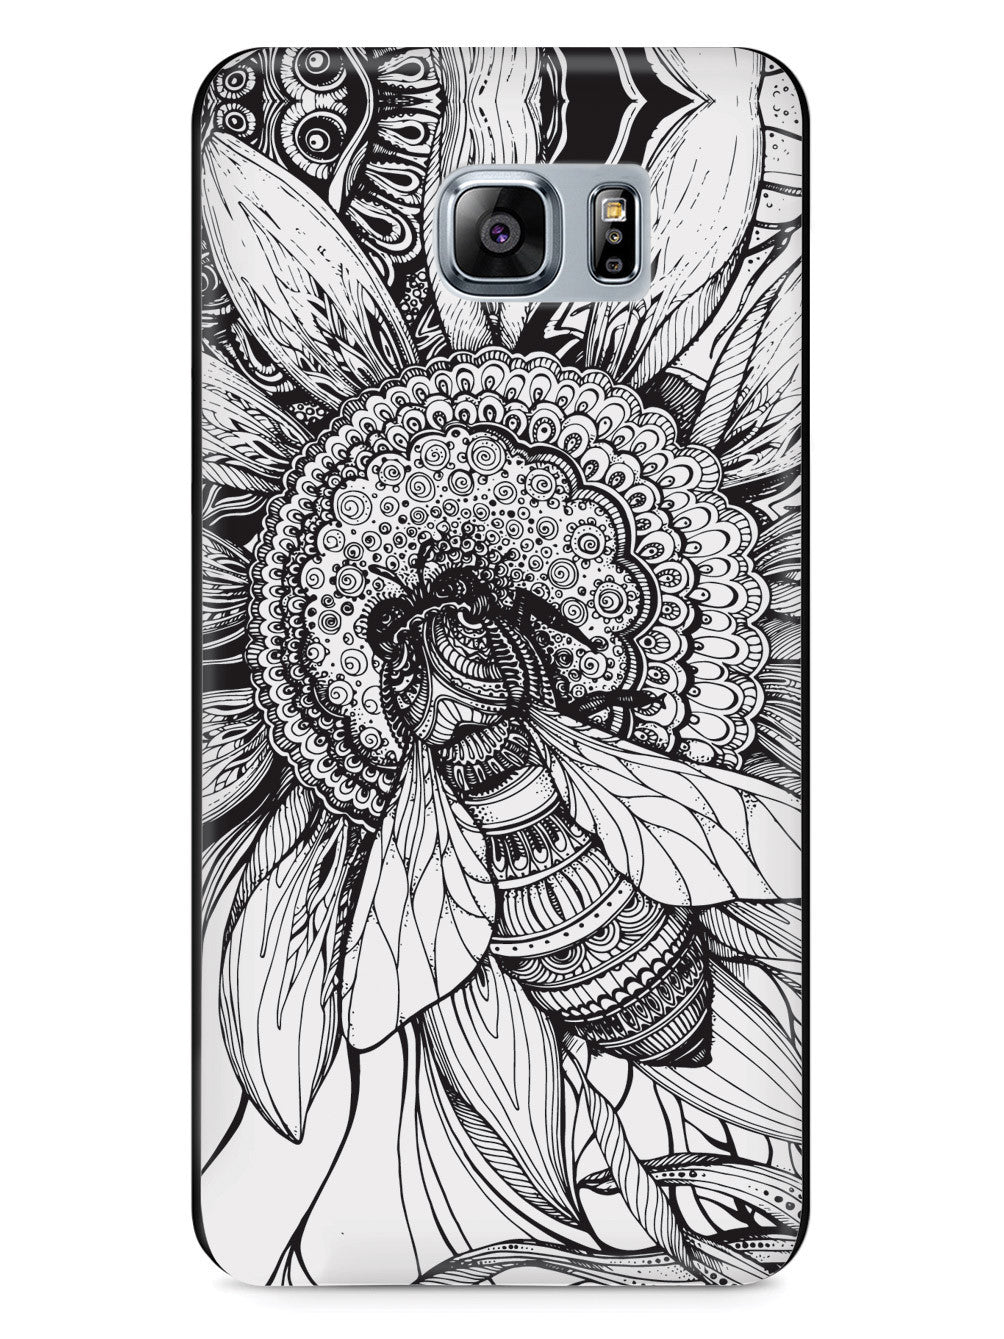 Sunflower & Bee - Sketch - Black Case